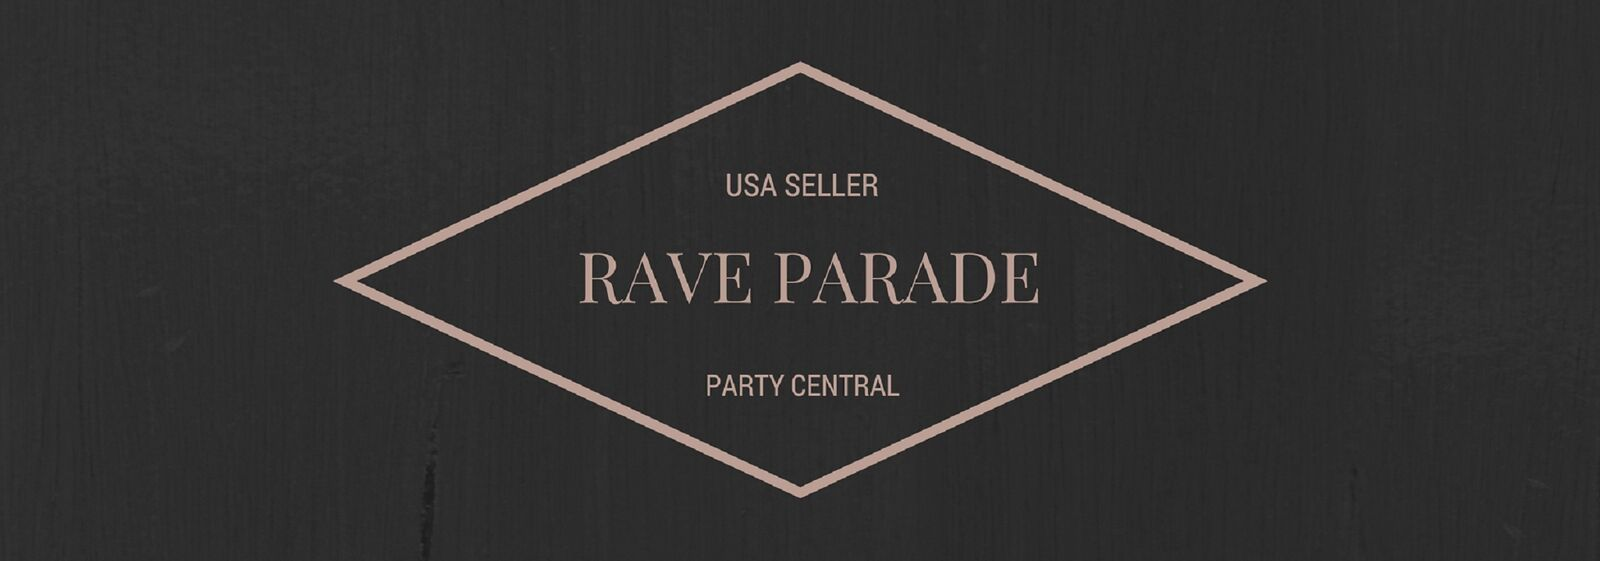 Rave Parade